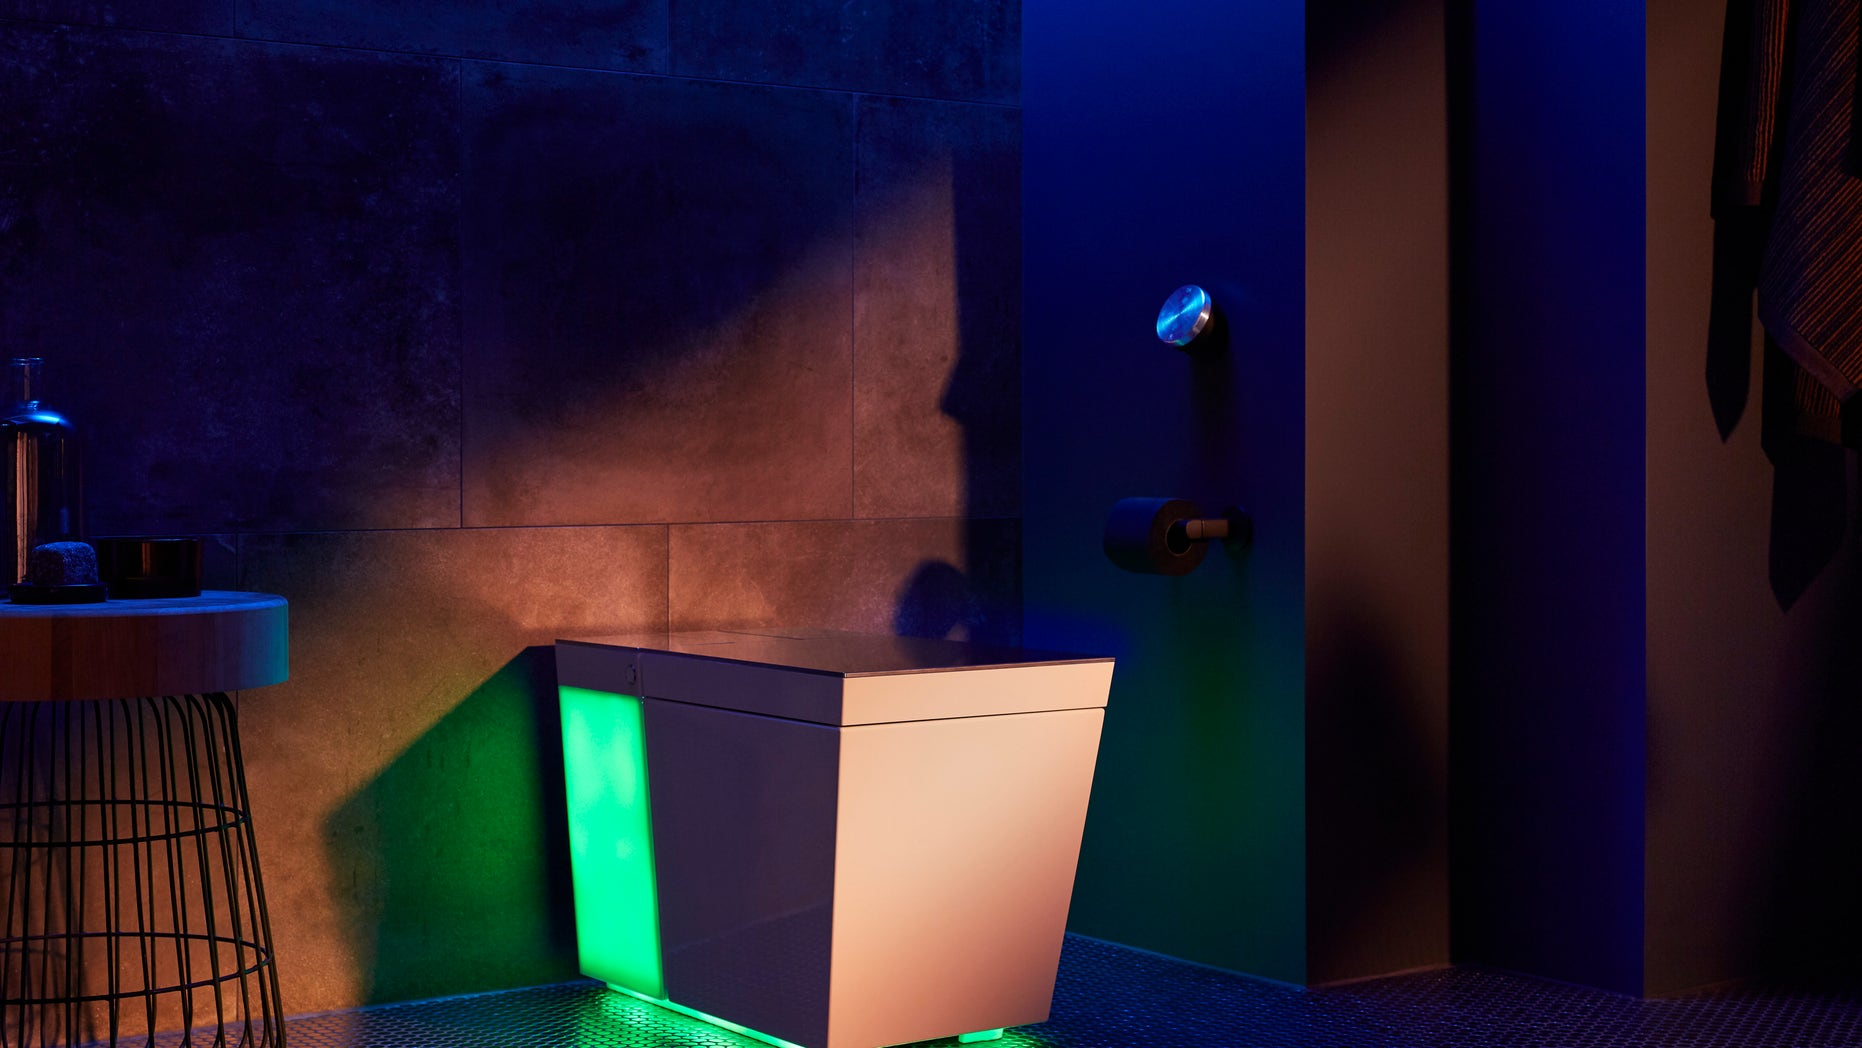 Kohler unveiled a $7,000 toilet called the Numi 2.0 at CES in Las Vegas this week.